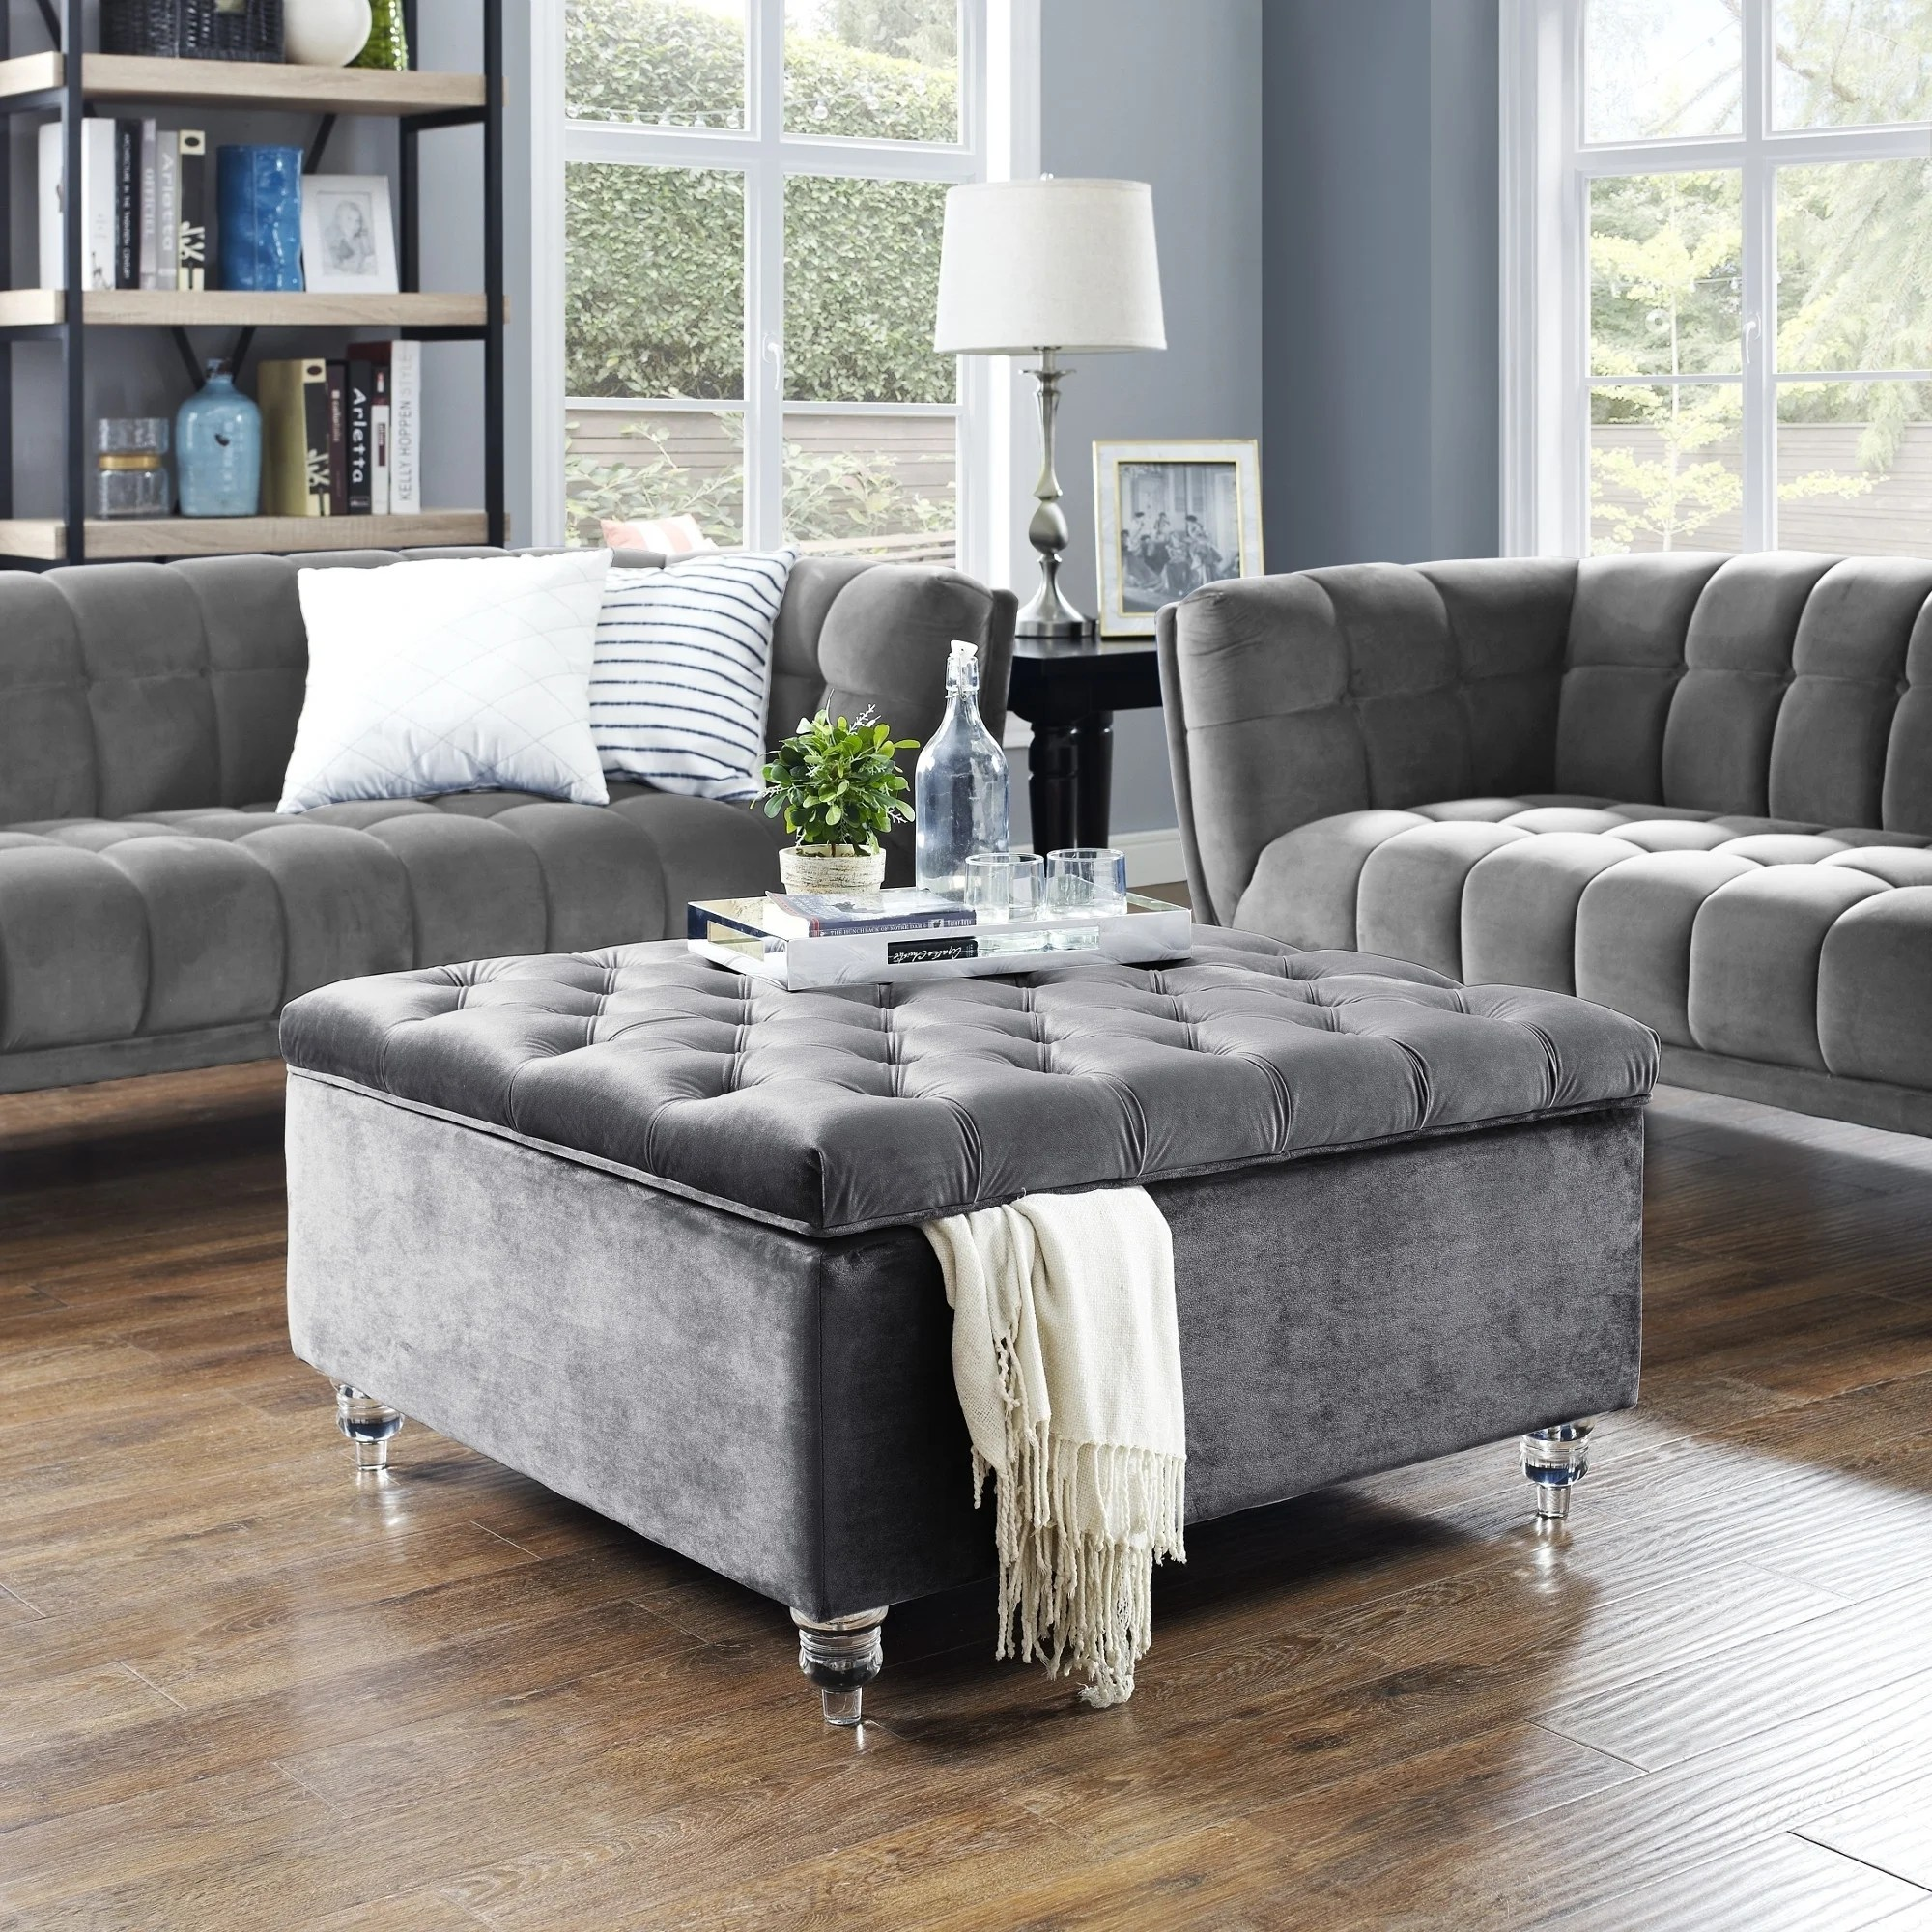 belini modern velvet button tufted storage ottoman coffee table